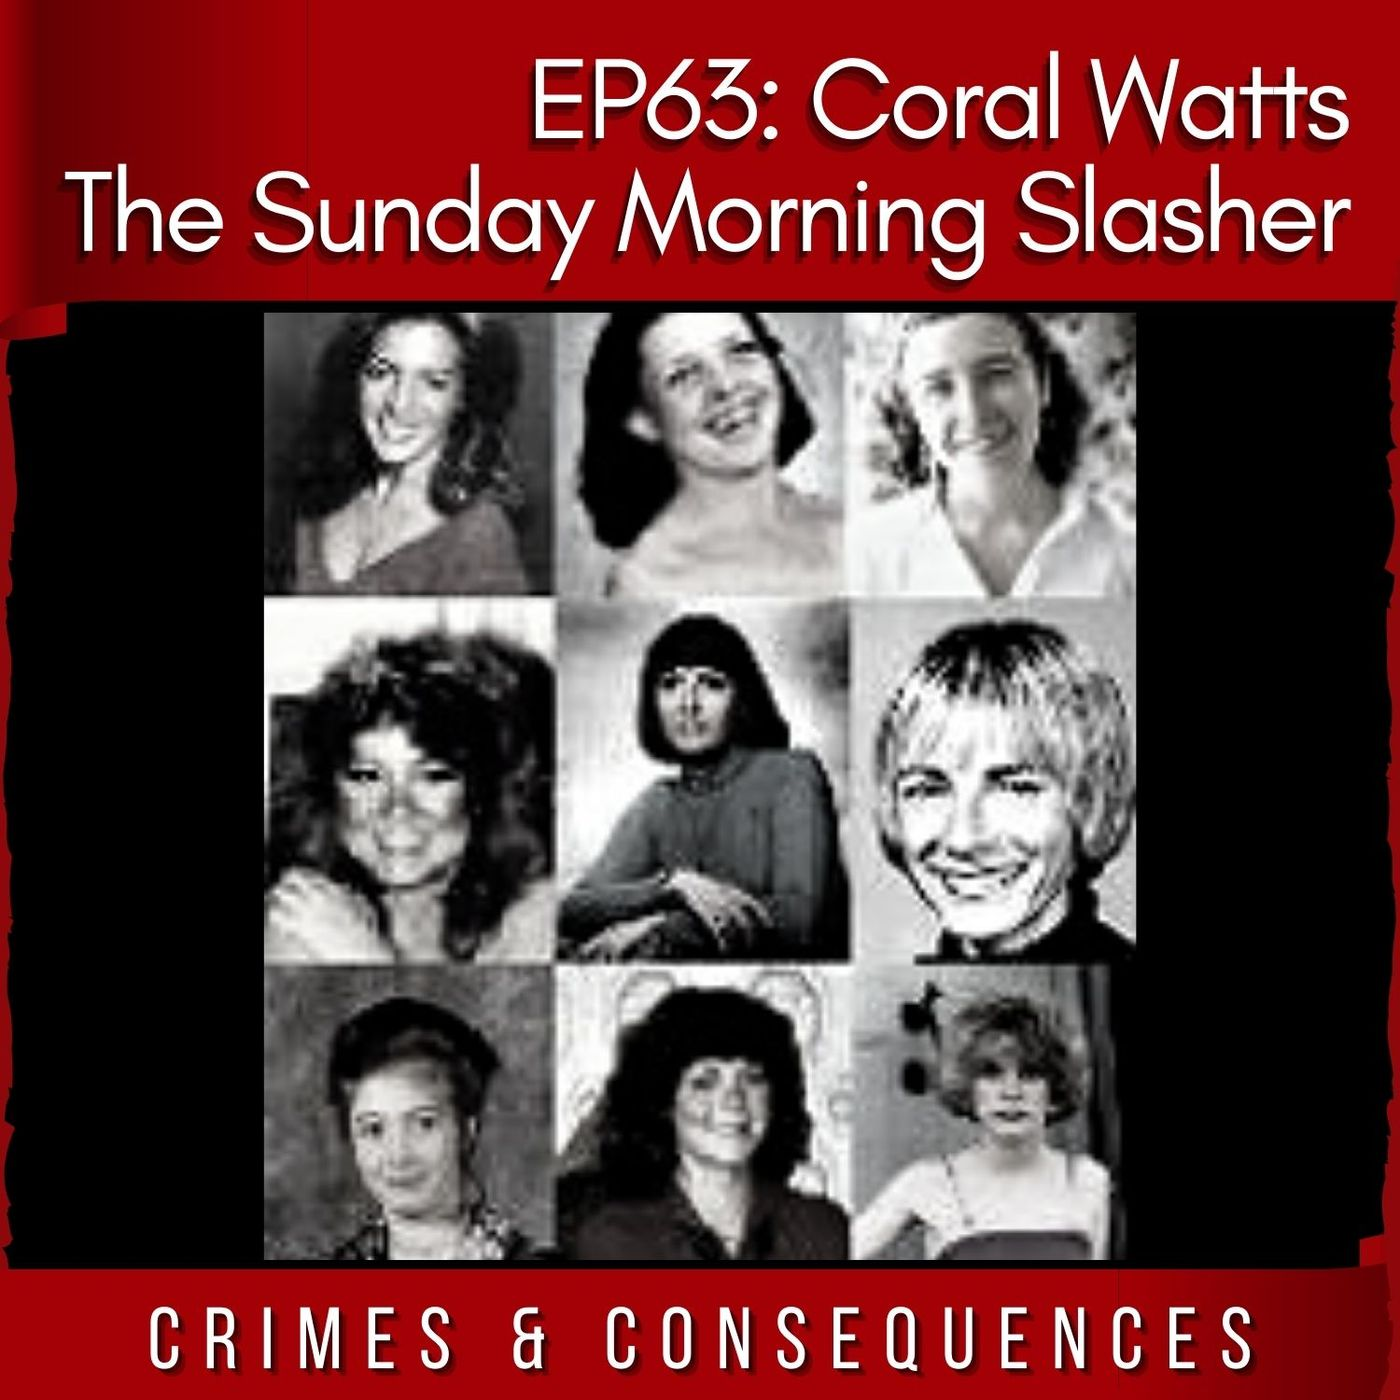 EP63: The Sunday Morning Slasher